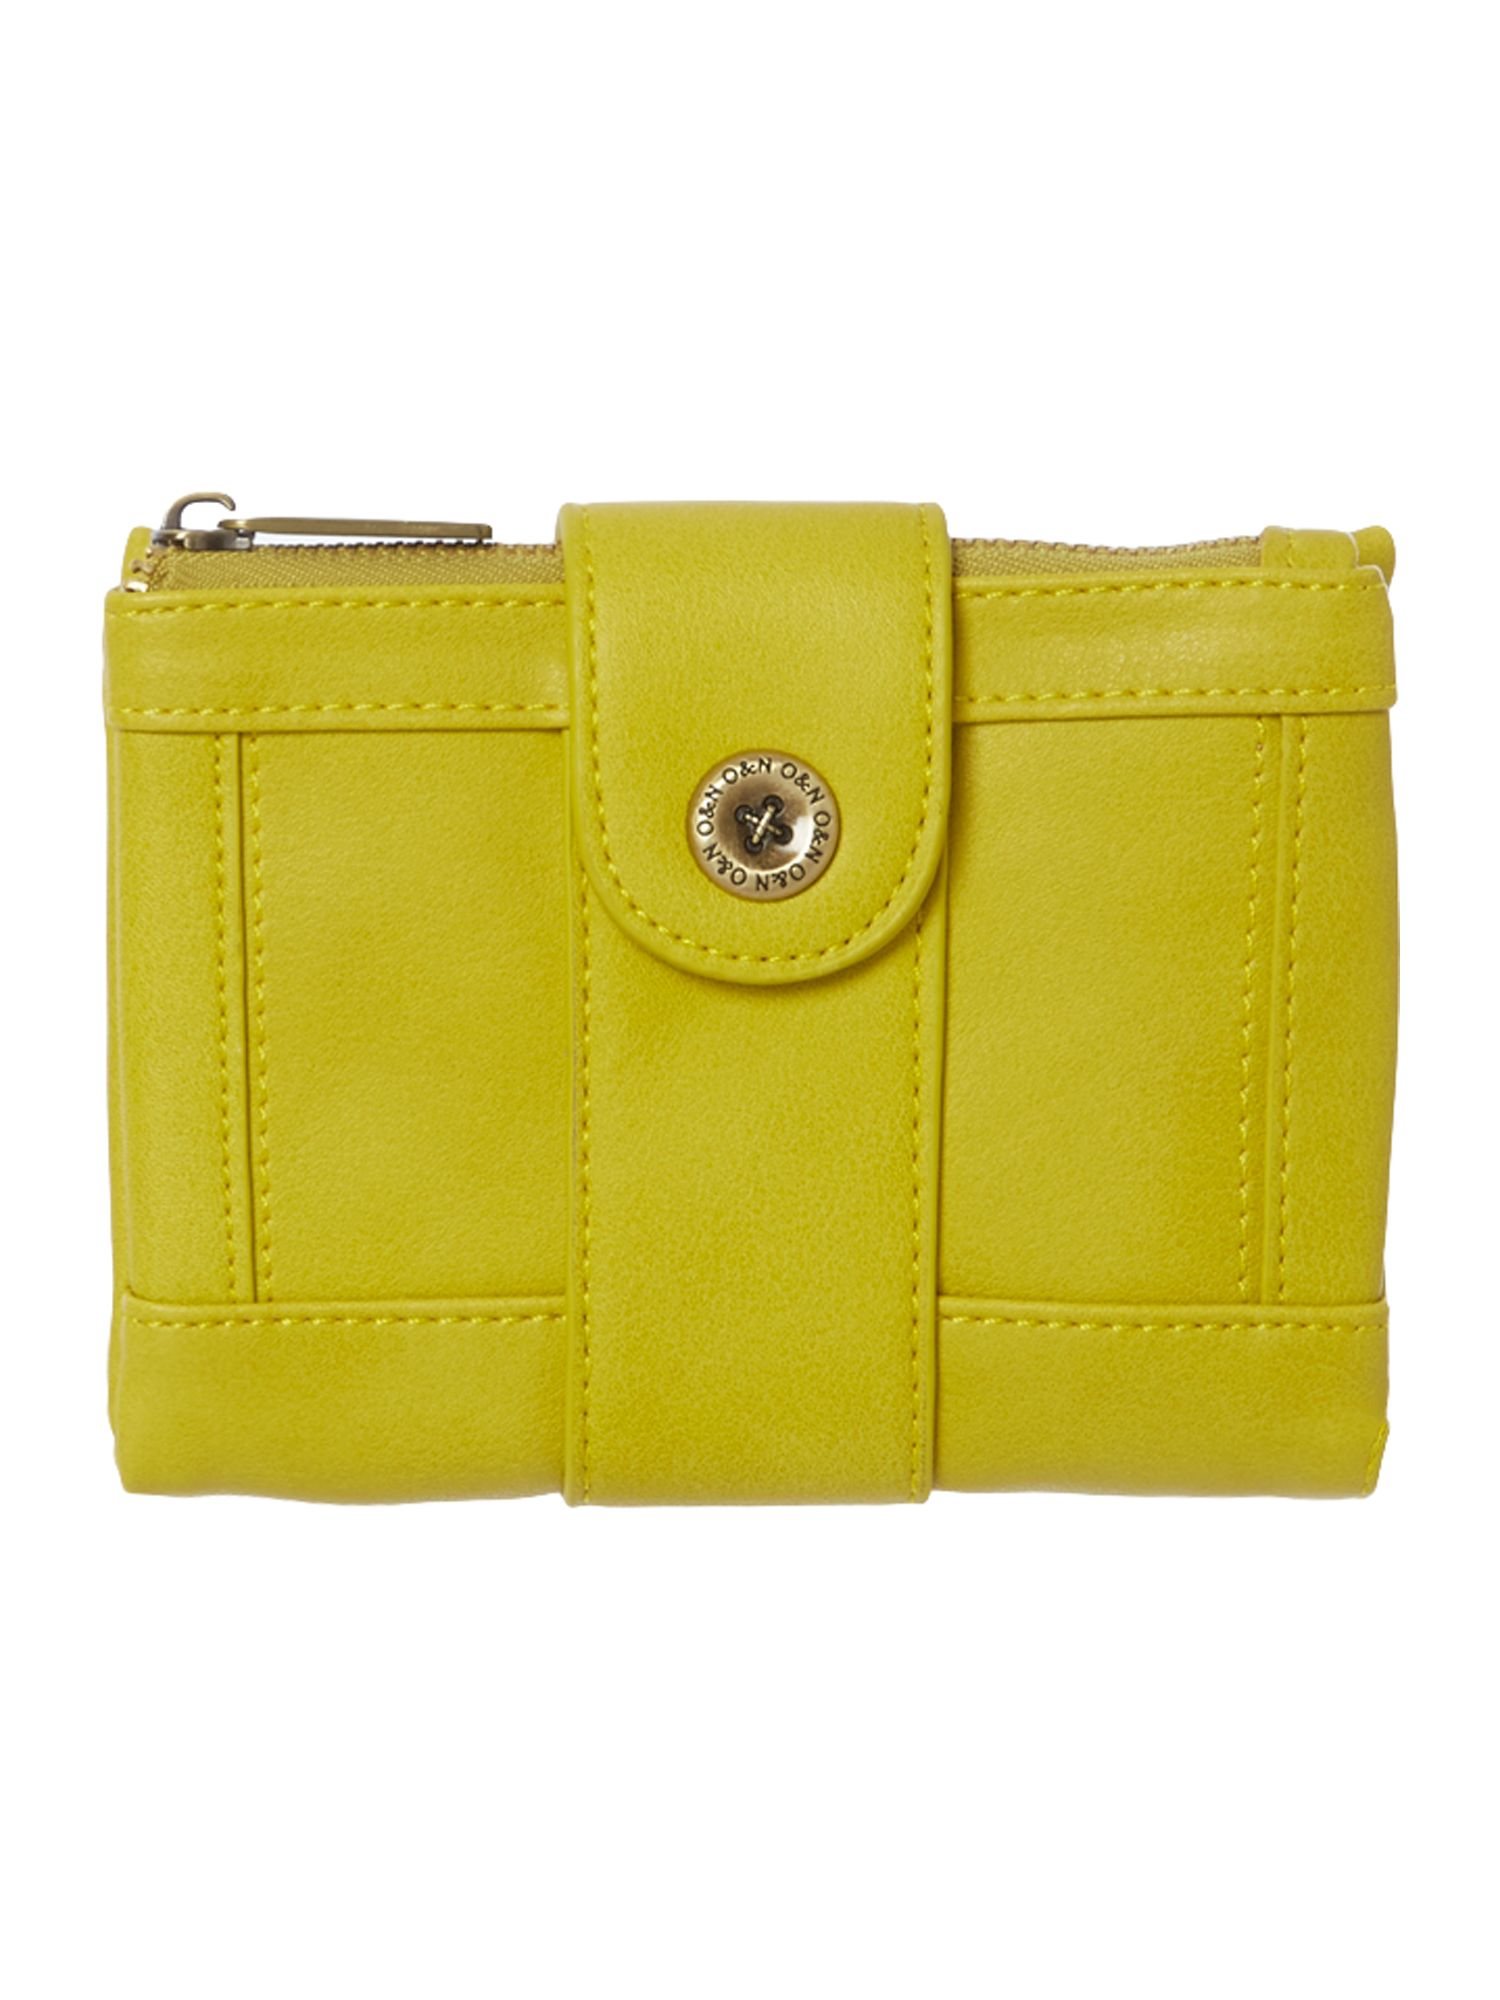 Mick yellow small flapover purse